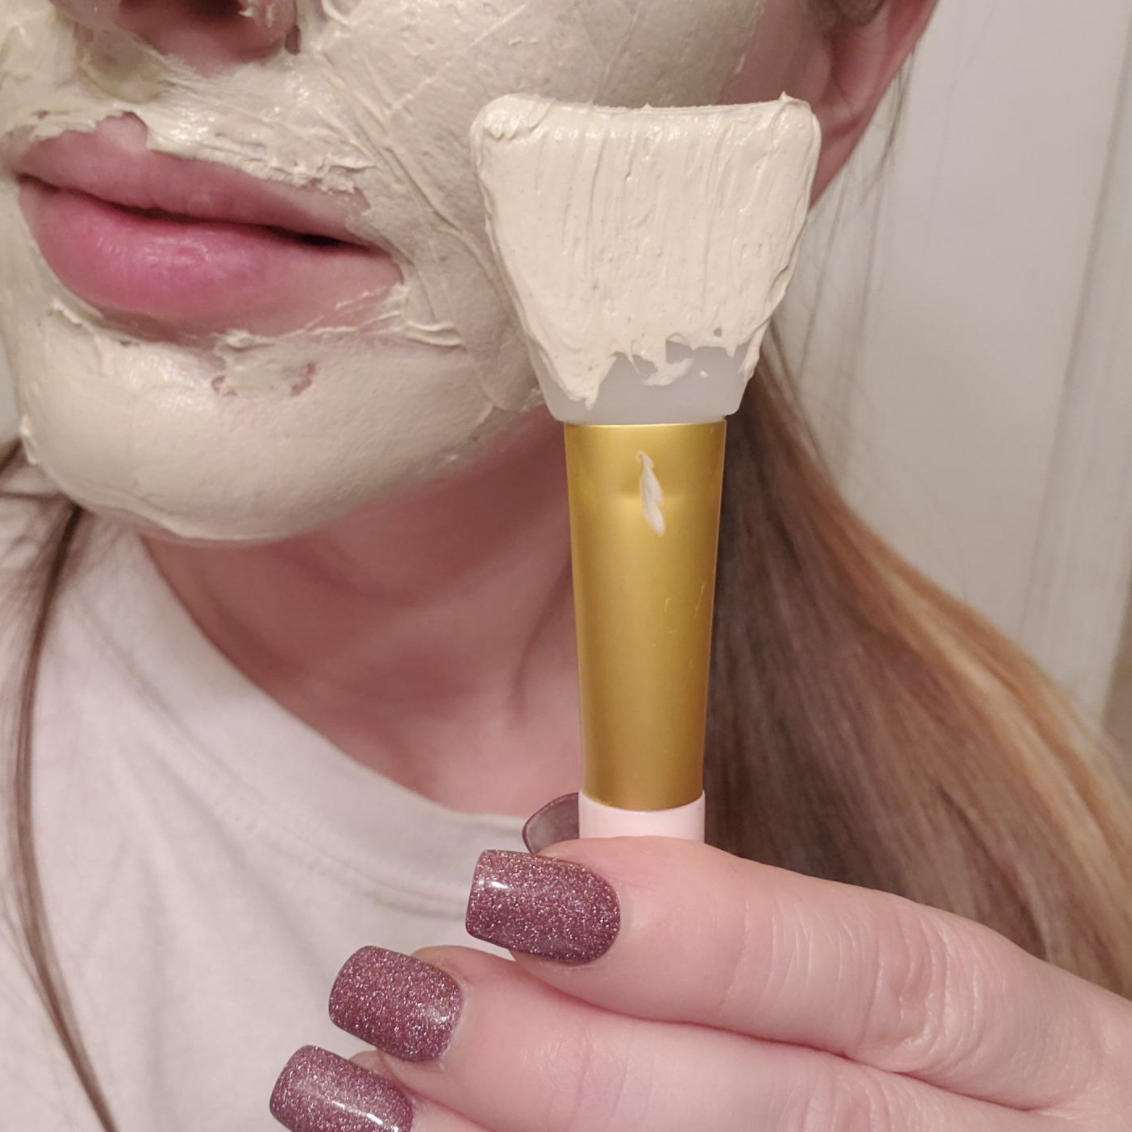 A reviewer using the spatula to apply their mask